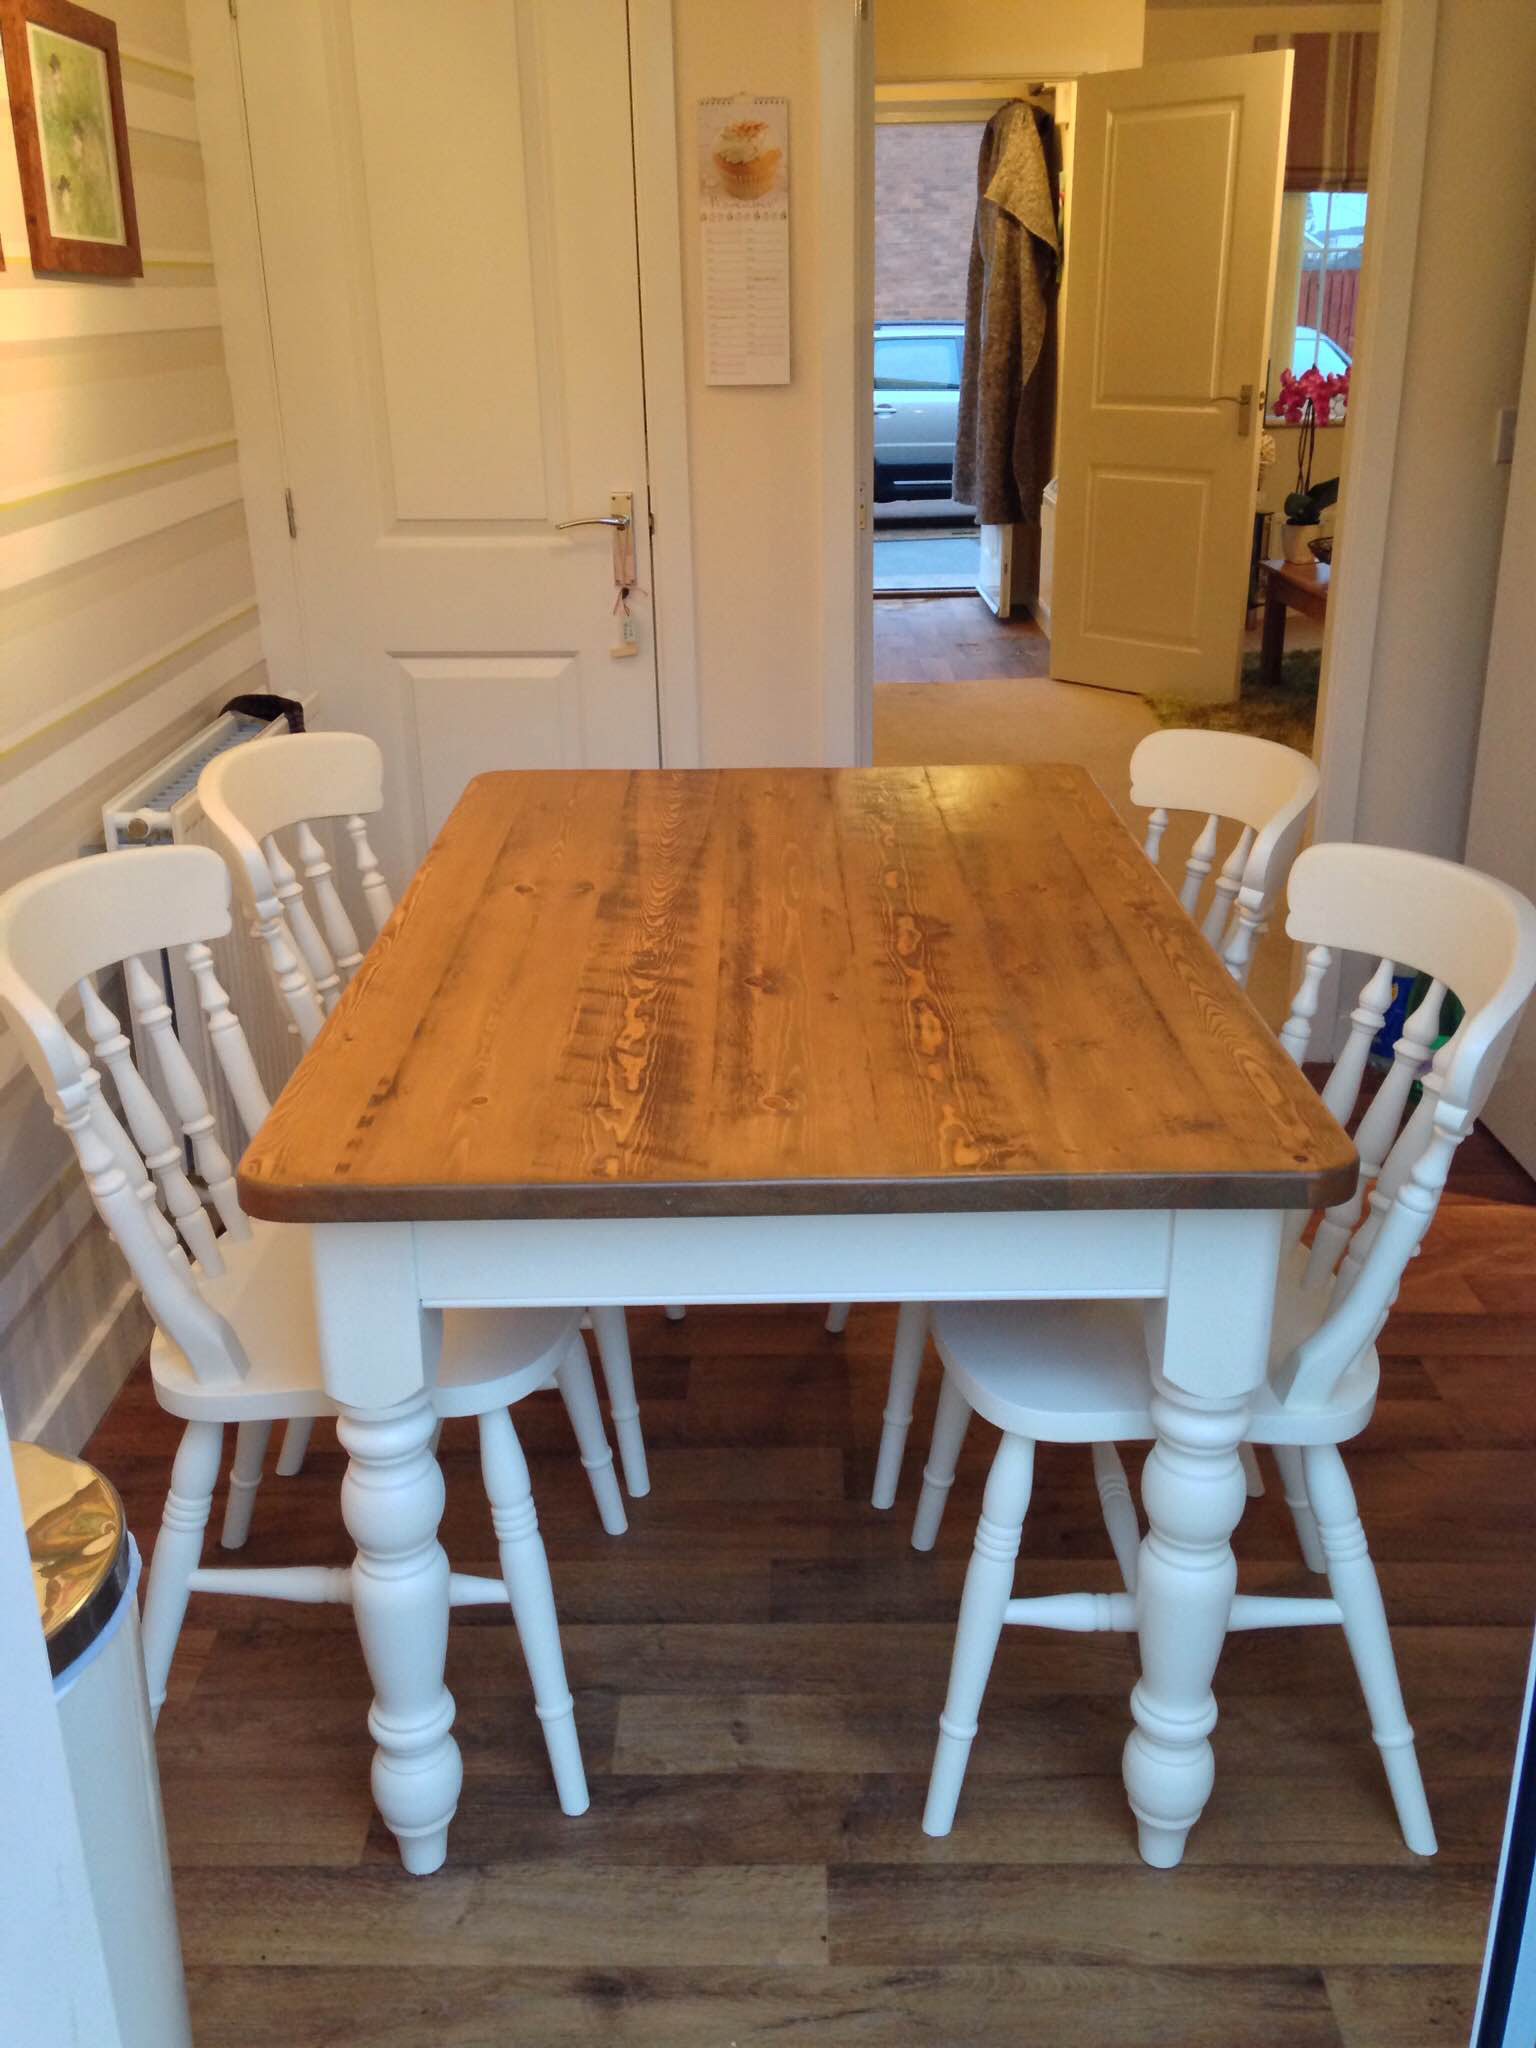 Upcycled Furniture Archives - Wolds Furniture Company